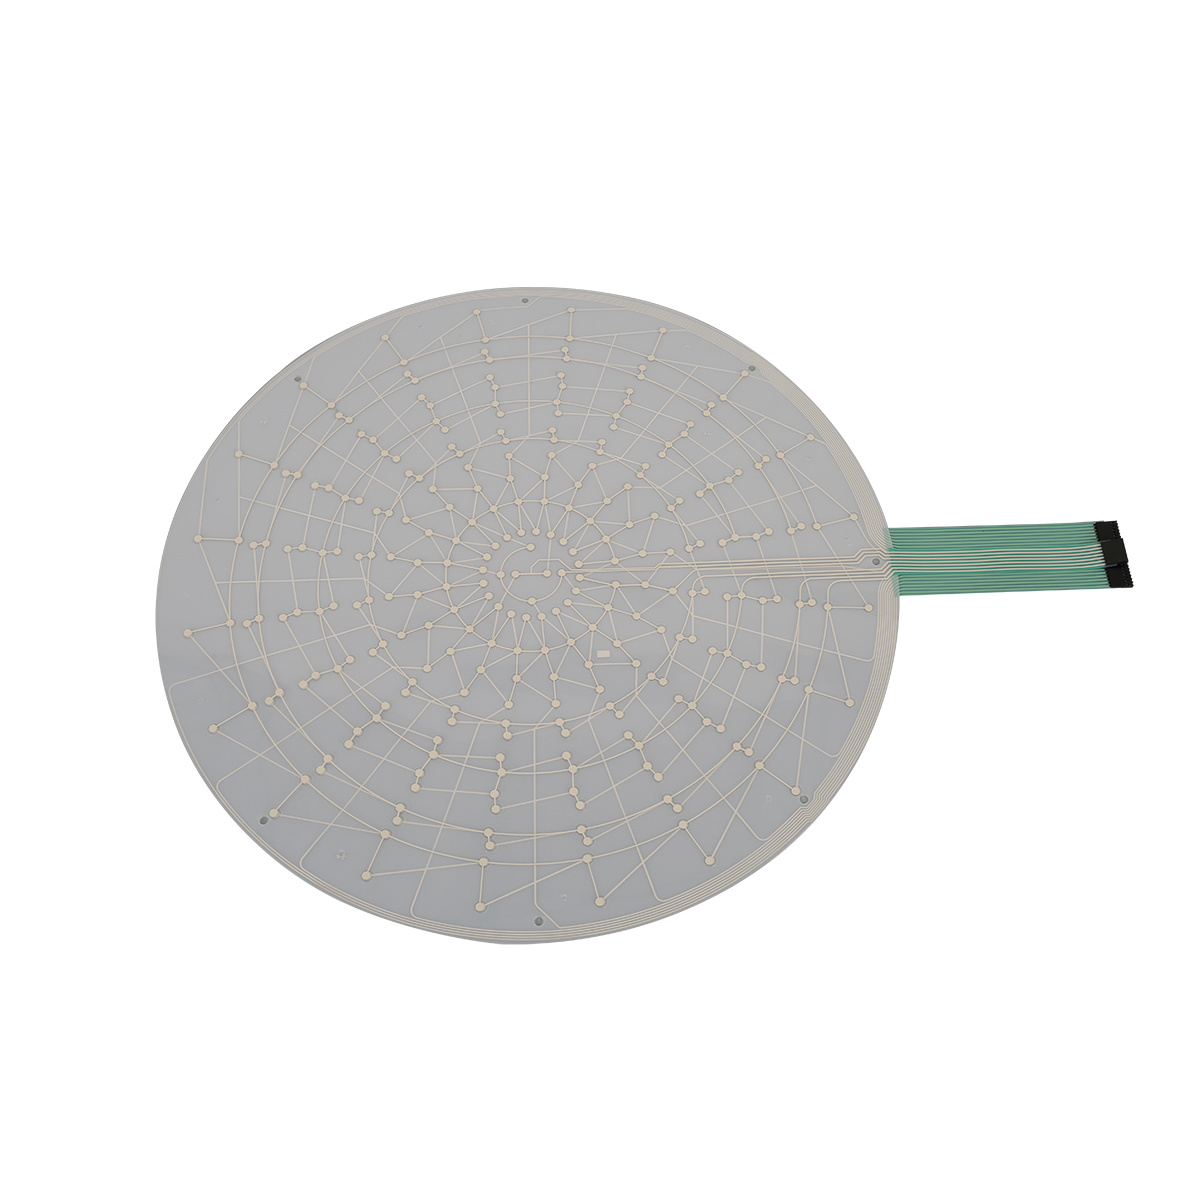 China Huge Silk Screen Pet Circuit Applied In Dart Board Electronic Fpc Copper Film Flat Tactile Flexible Magnetic Multilayer